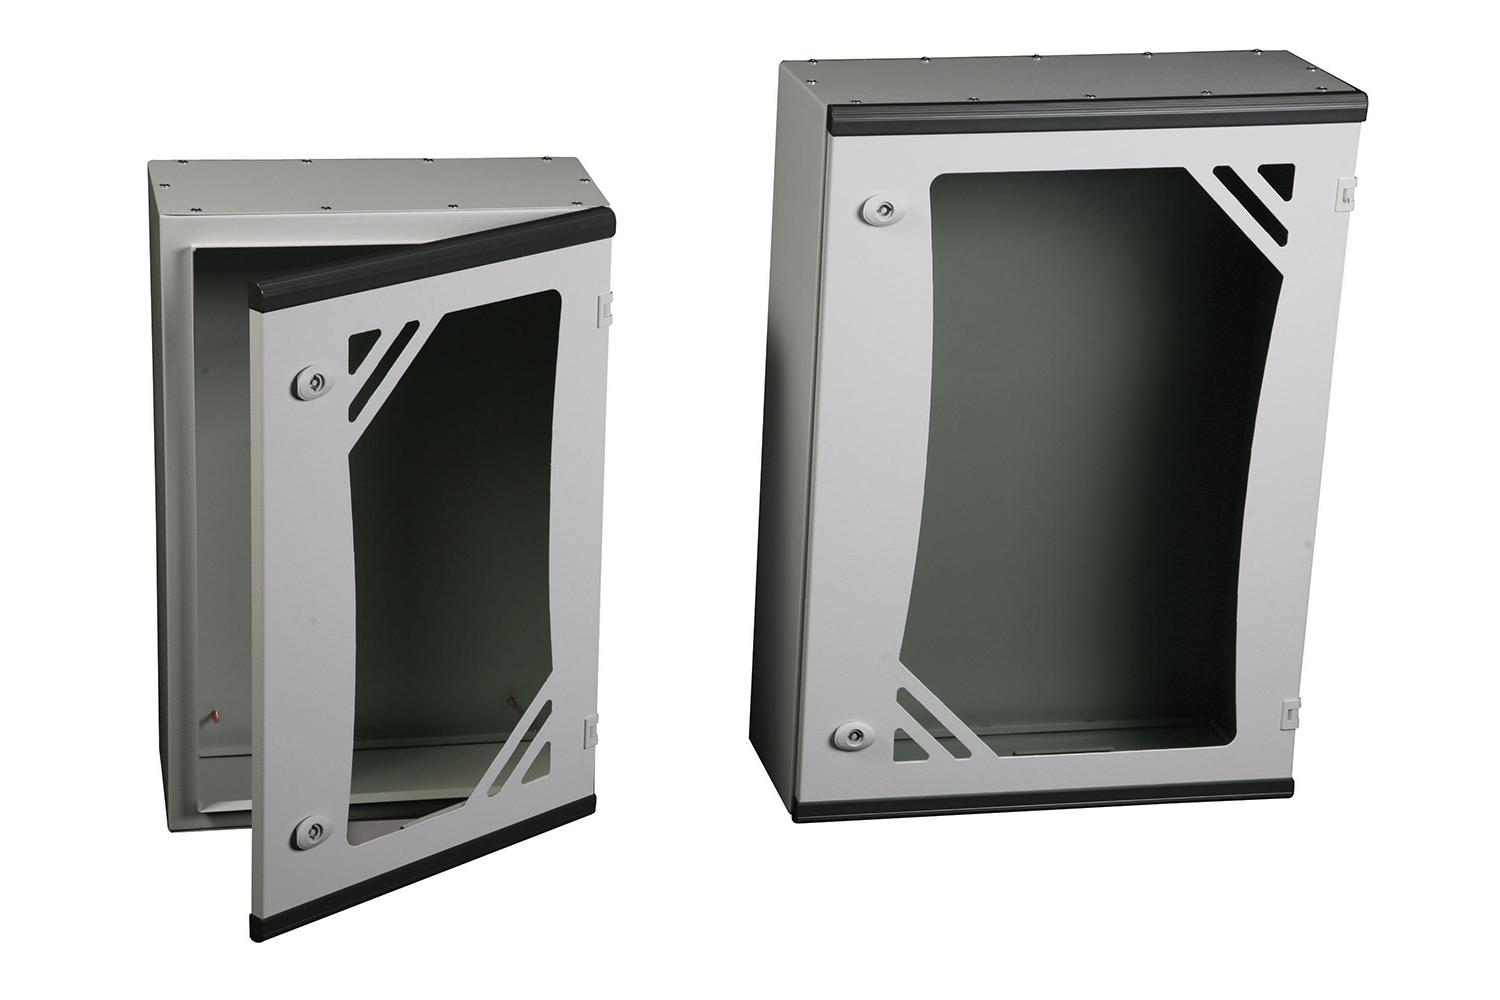 ARES Series WALL MOUNTED ENCLOSURES - GLAZED DOOR, WITHOUT MOUNTING PLATE